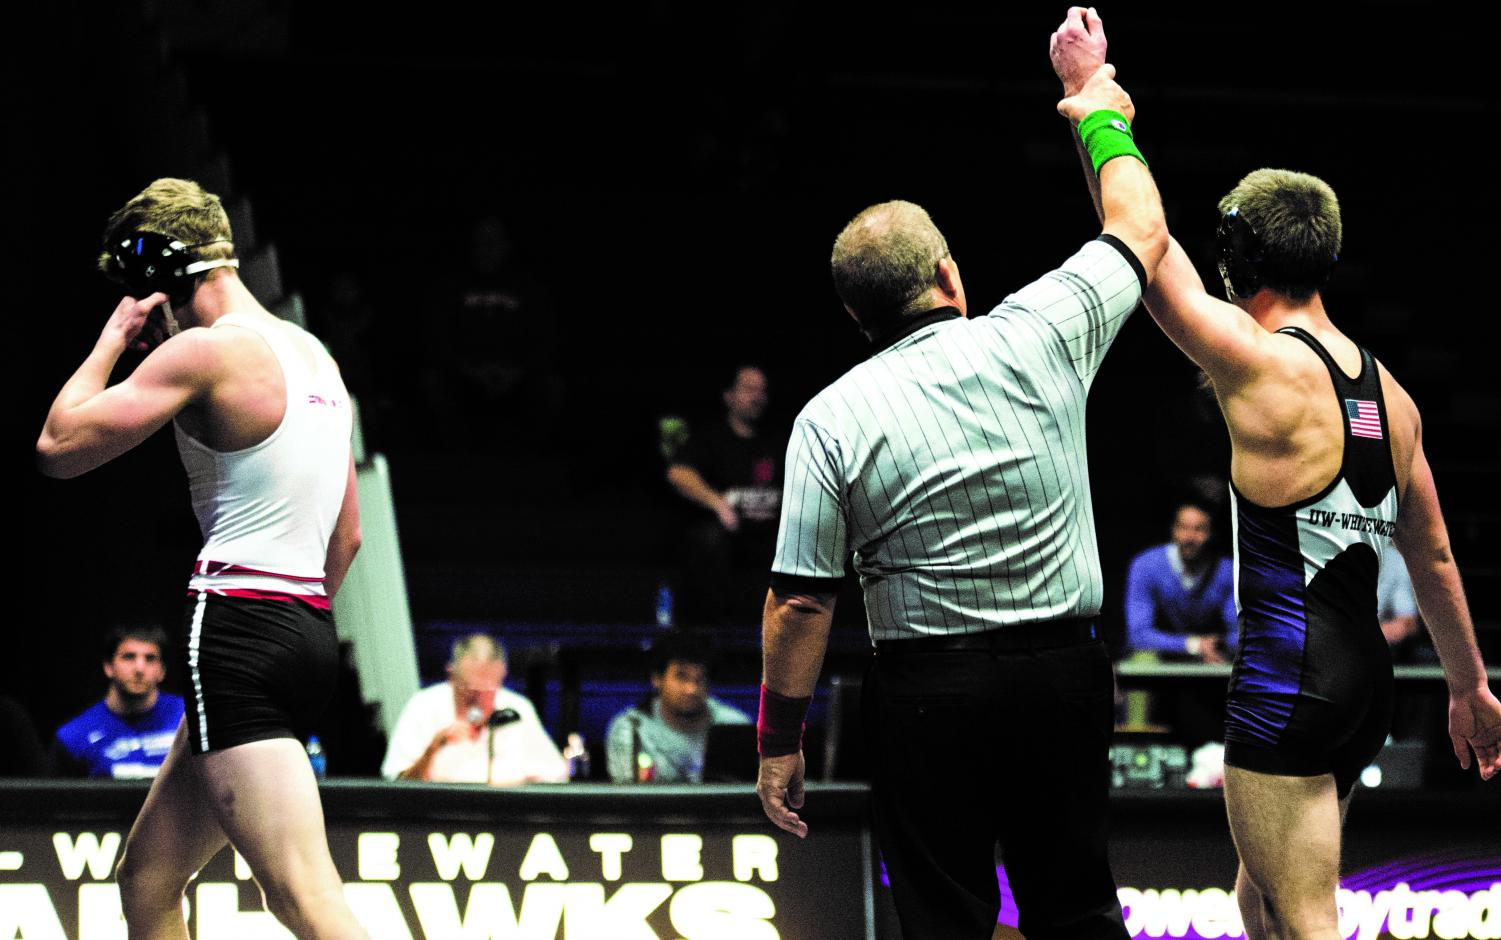 The referee raises sophomore Wilder Wichman's hand after his 7-2 decision victory over the Badger's Patrick Spray at 149 pounds. Wichman was the only Warhawks' wrestler to claim a victory in his match against the UW-Madison wrestling squad.